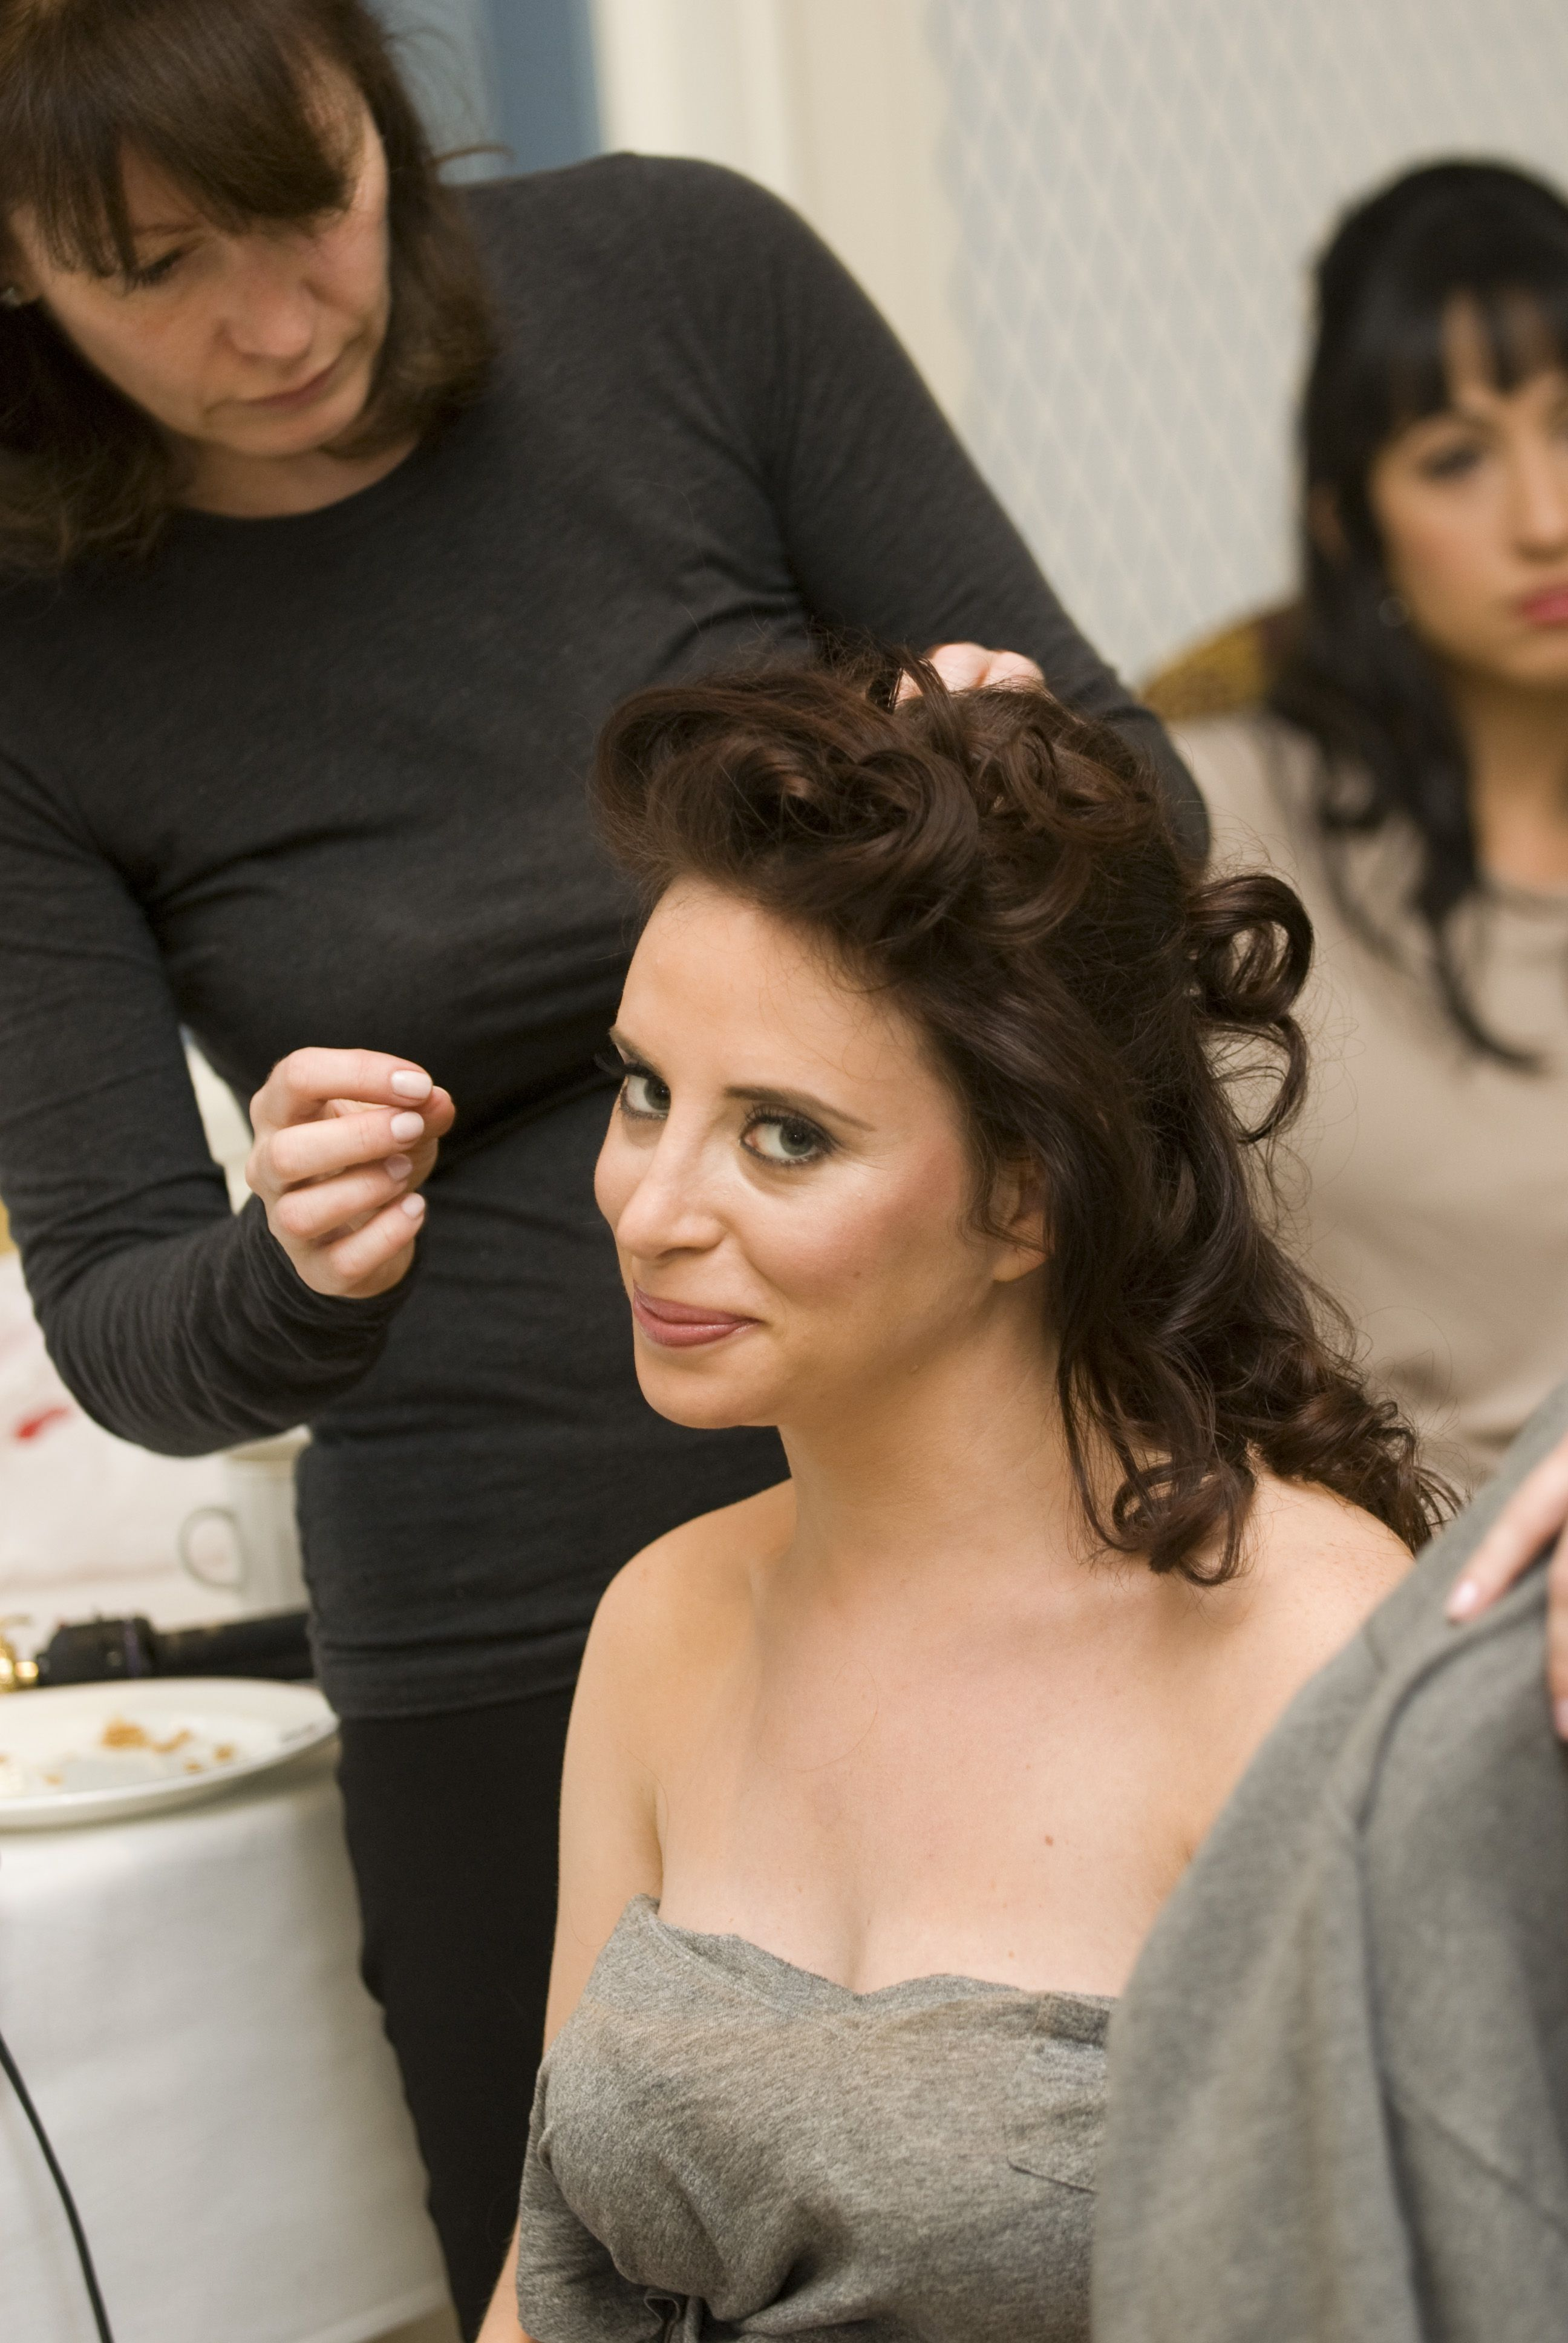 Wedding Day - Getting Ready - Reflections Creative Photography